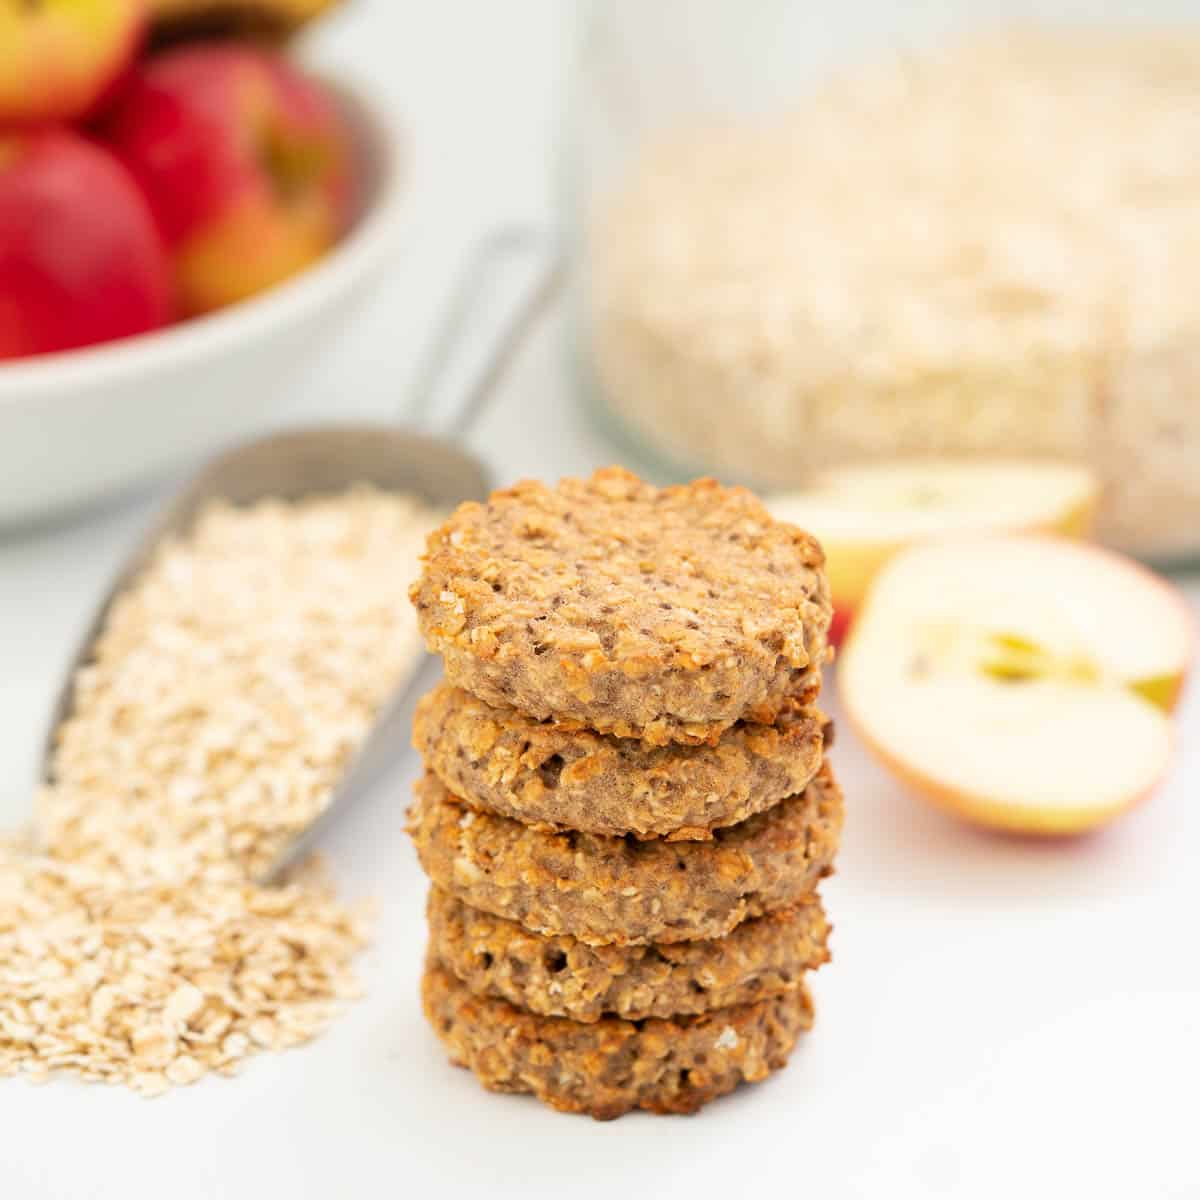 A stack of 5 oatmeal toddler cookies on a bench top with rolled oats and apples in the background.